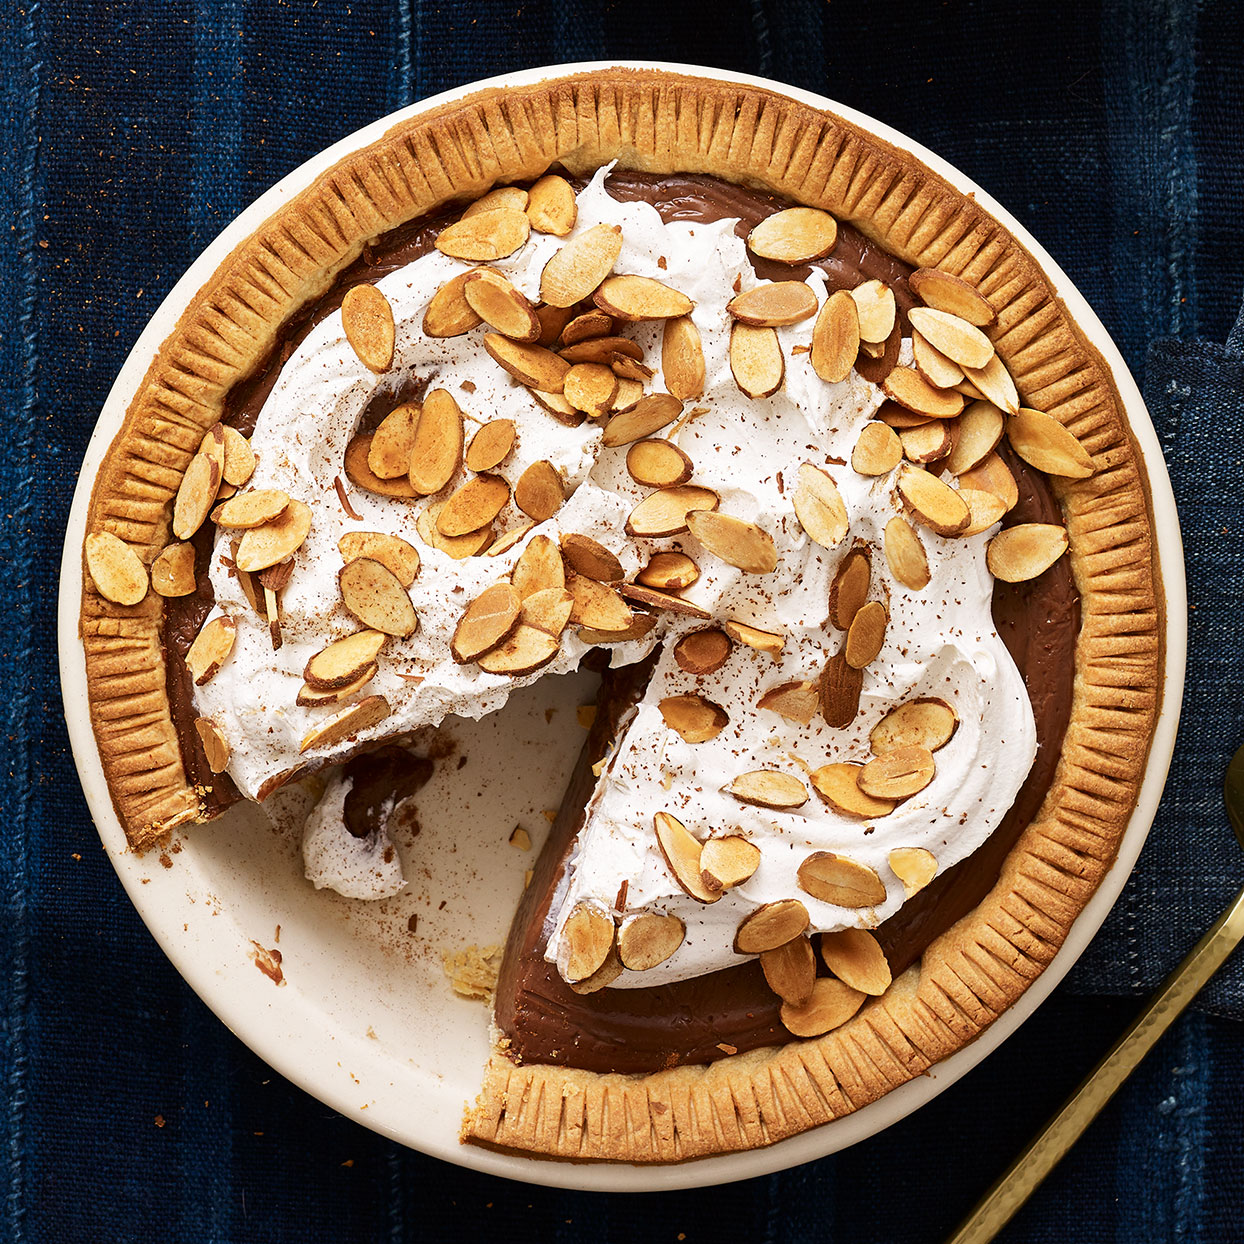 Who knew a pie recipe could taste so good? Homemade chocolate pie is a must-have at many holiday gatherings and this one will set a new bar. The velvety filling is lightened up by swapping in some cornstarch for some of the egg yolks traditionally used for thickening. The pairing of bittersweet chocolate with the nutty amaretto flavor is pure almond joy that's only better topped with cinnamon-spiced whipped cream (included!).